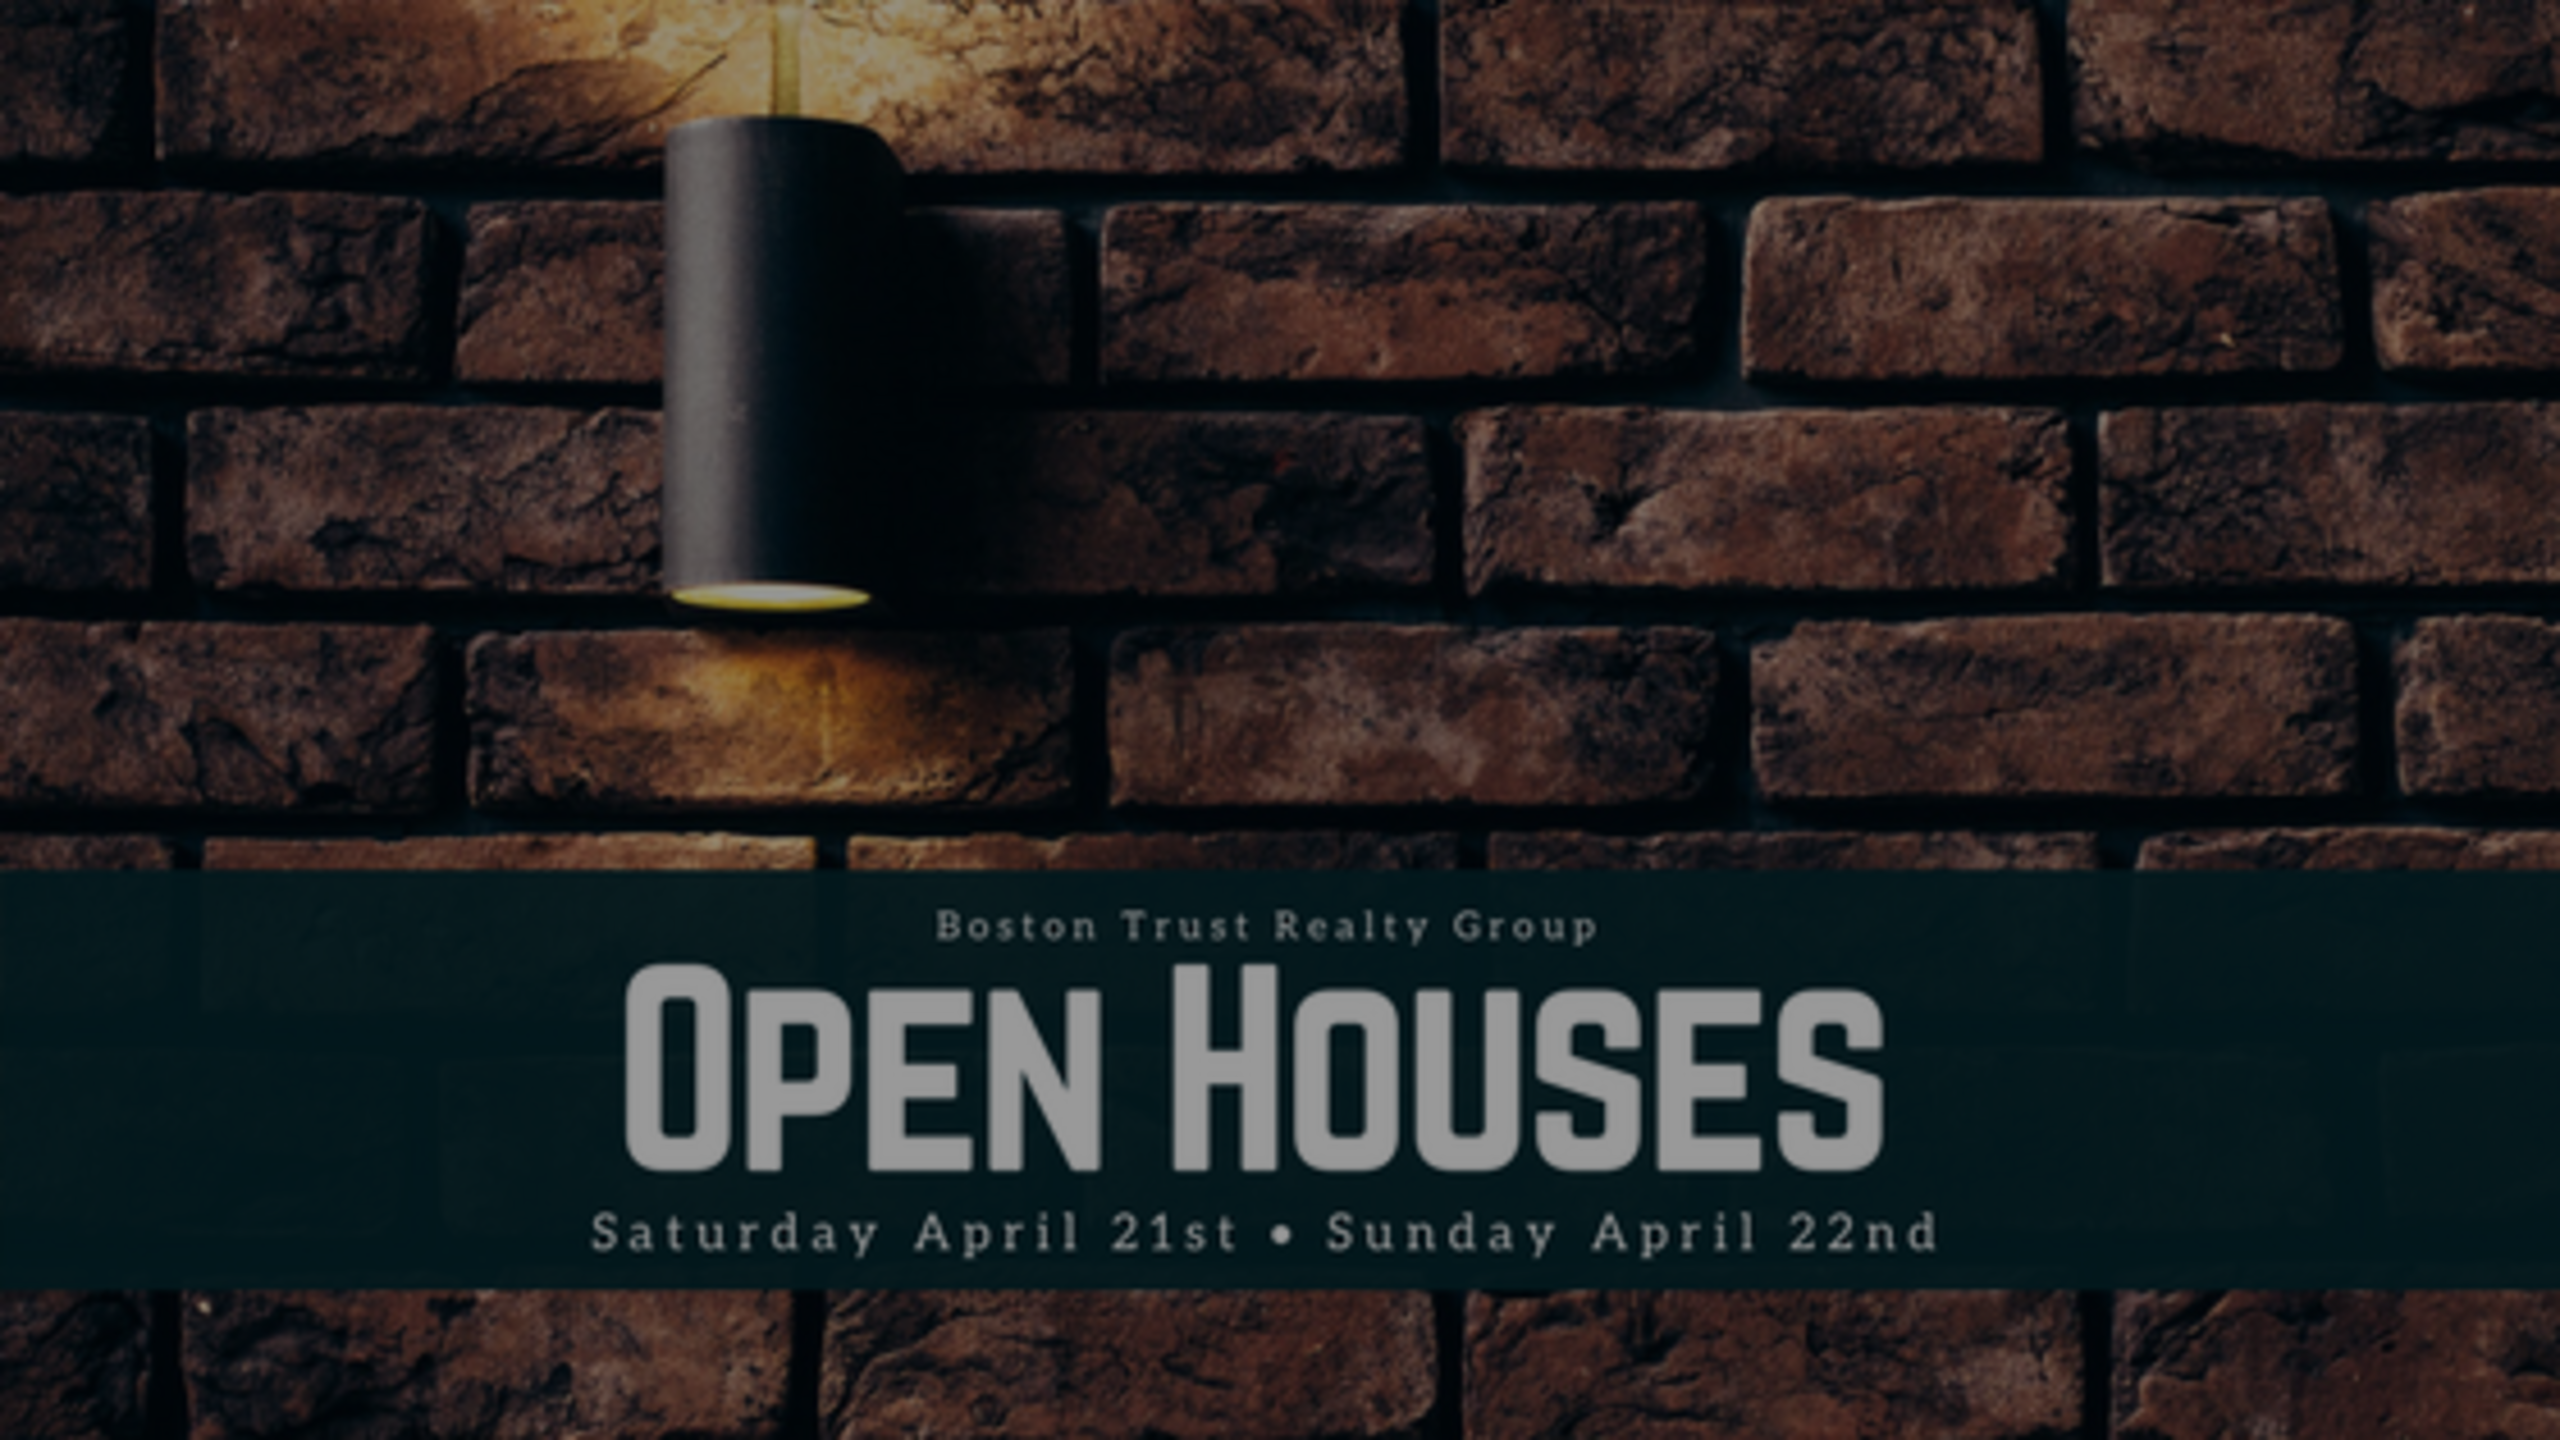 Our Open House Schedule: Weekend of 4/21 + 4/22